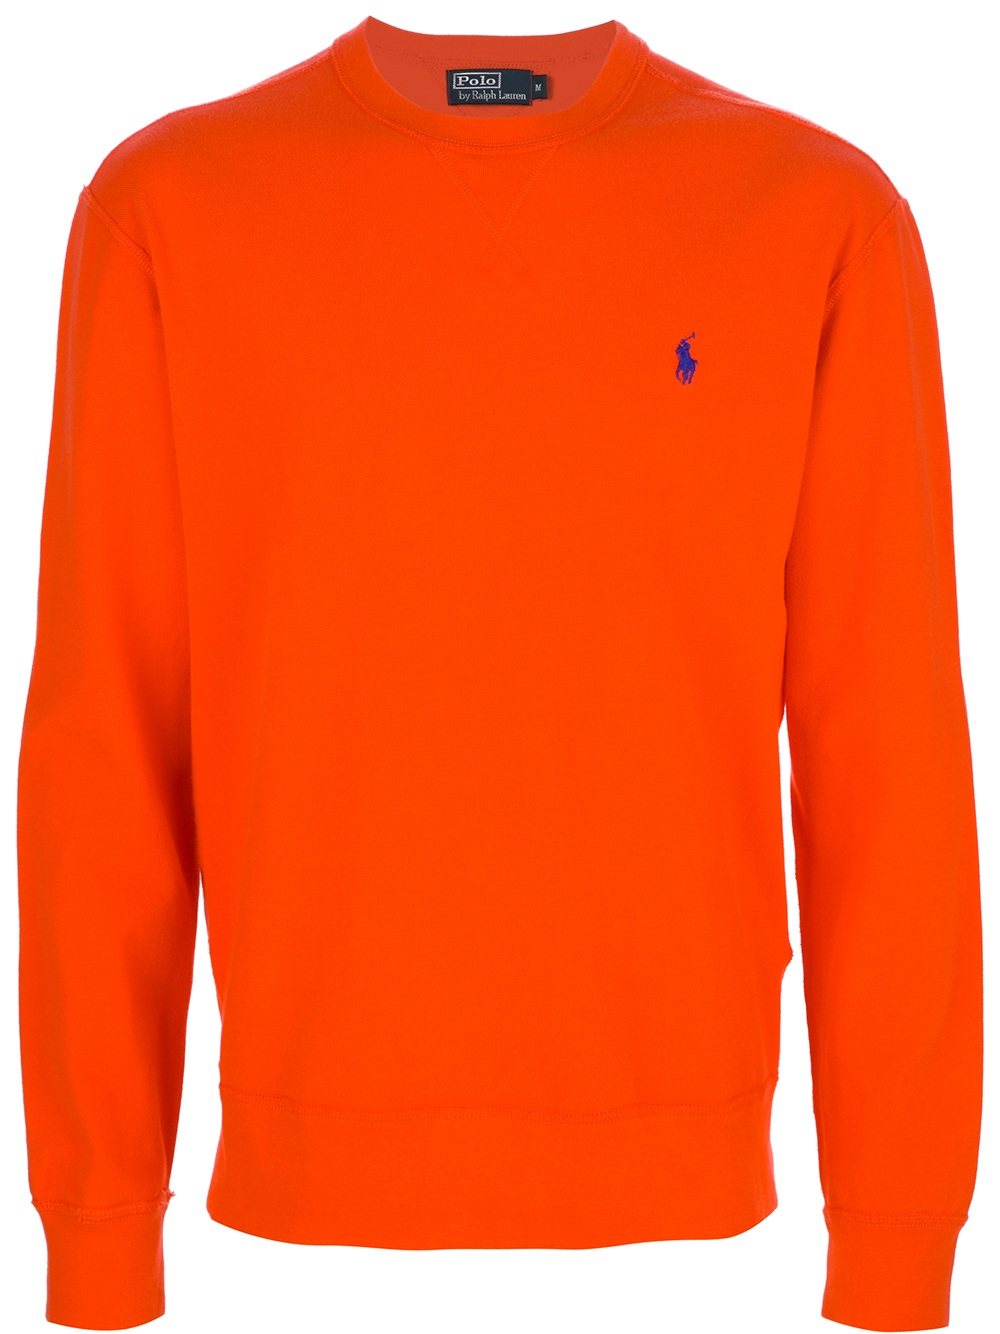 polo ralph lauren crew neck sweatshirt in orange for men lyst. Black Bedroom Furniture Sets. Home Design Ideas